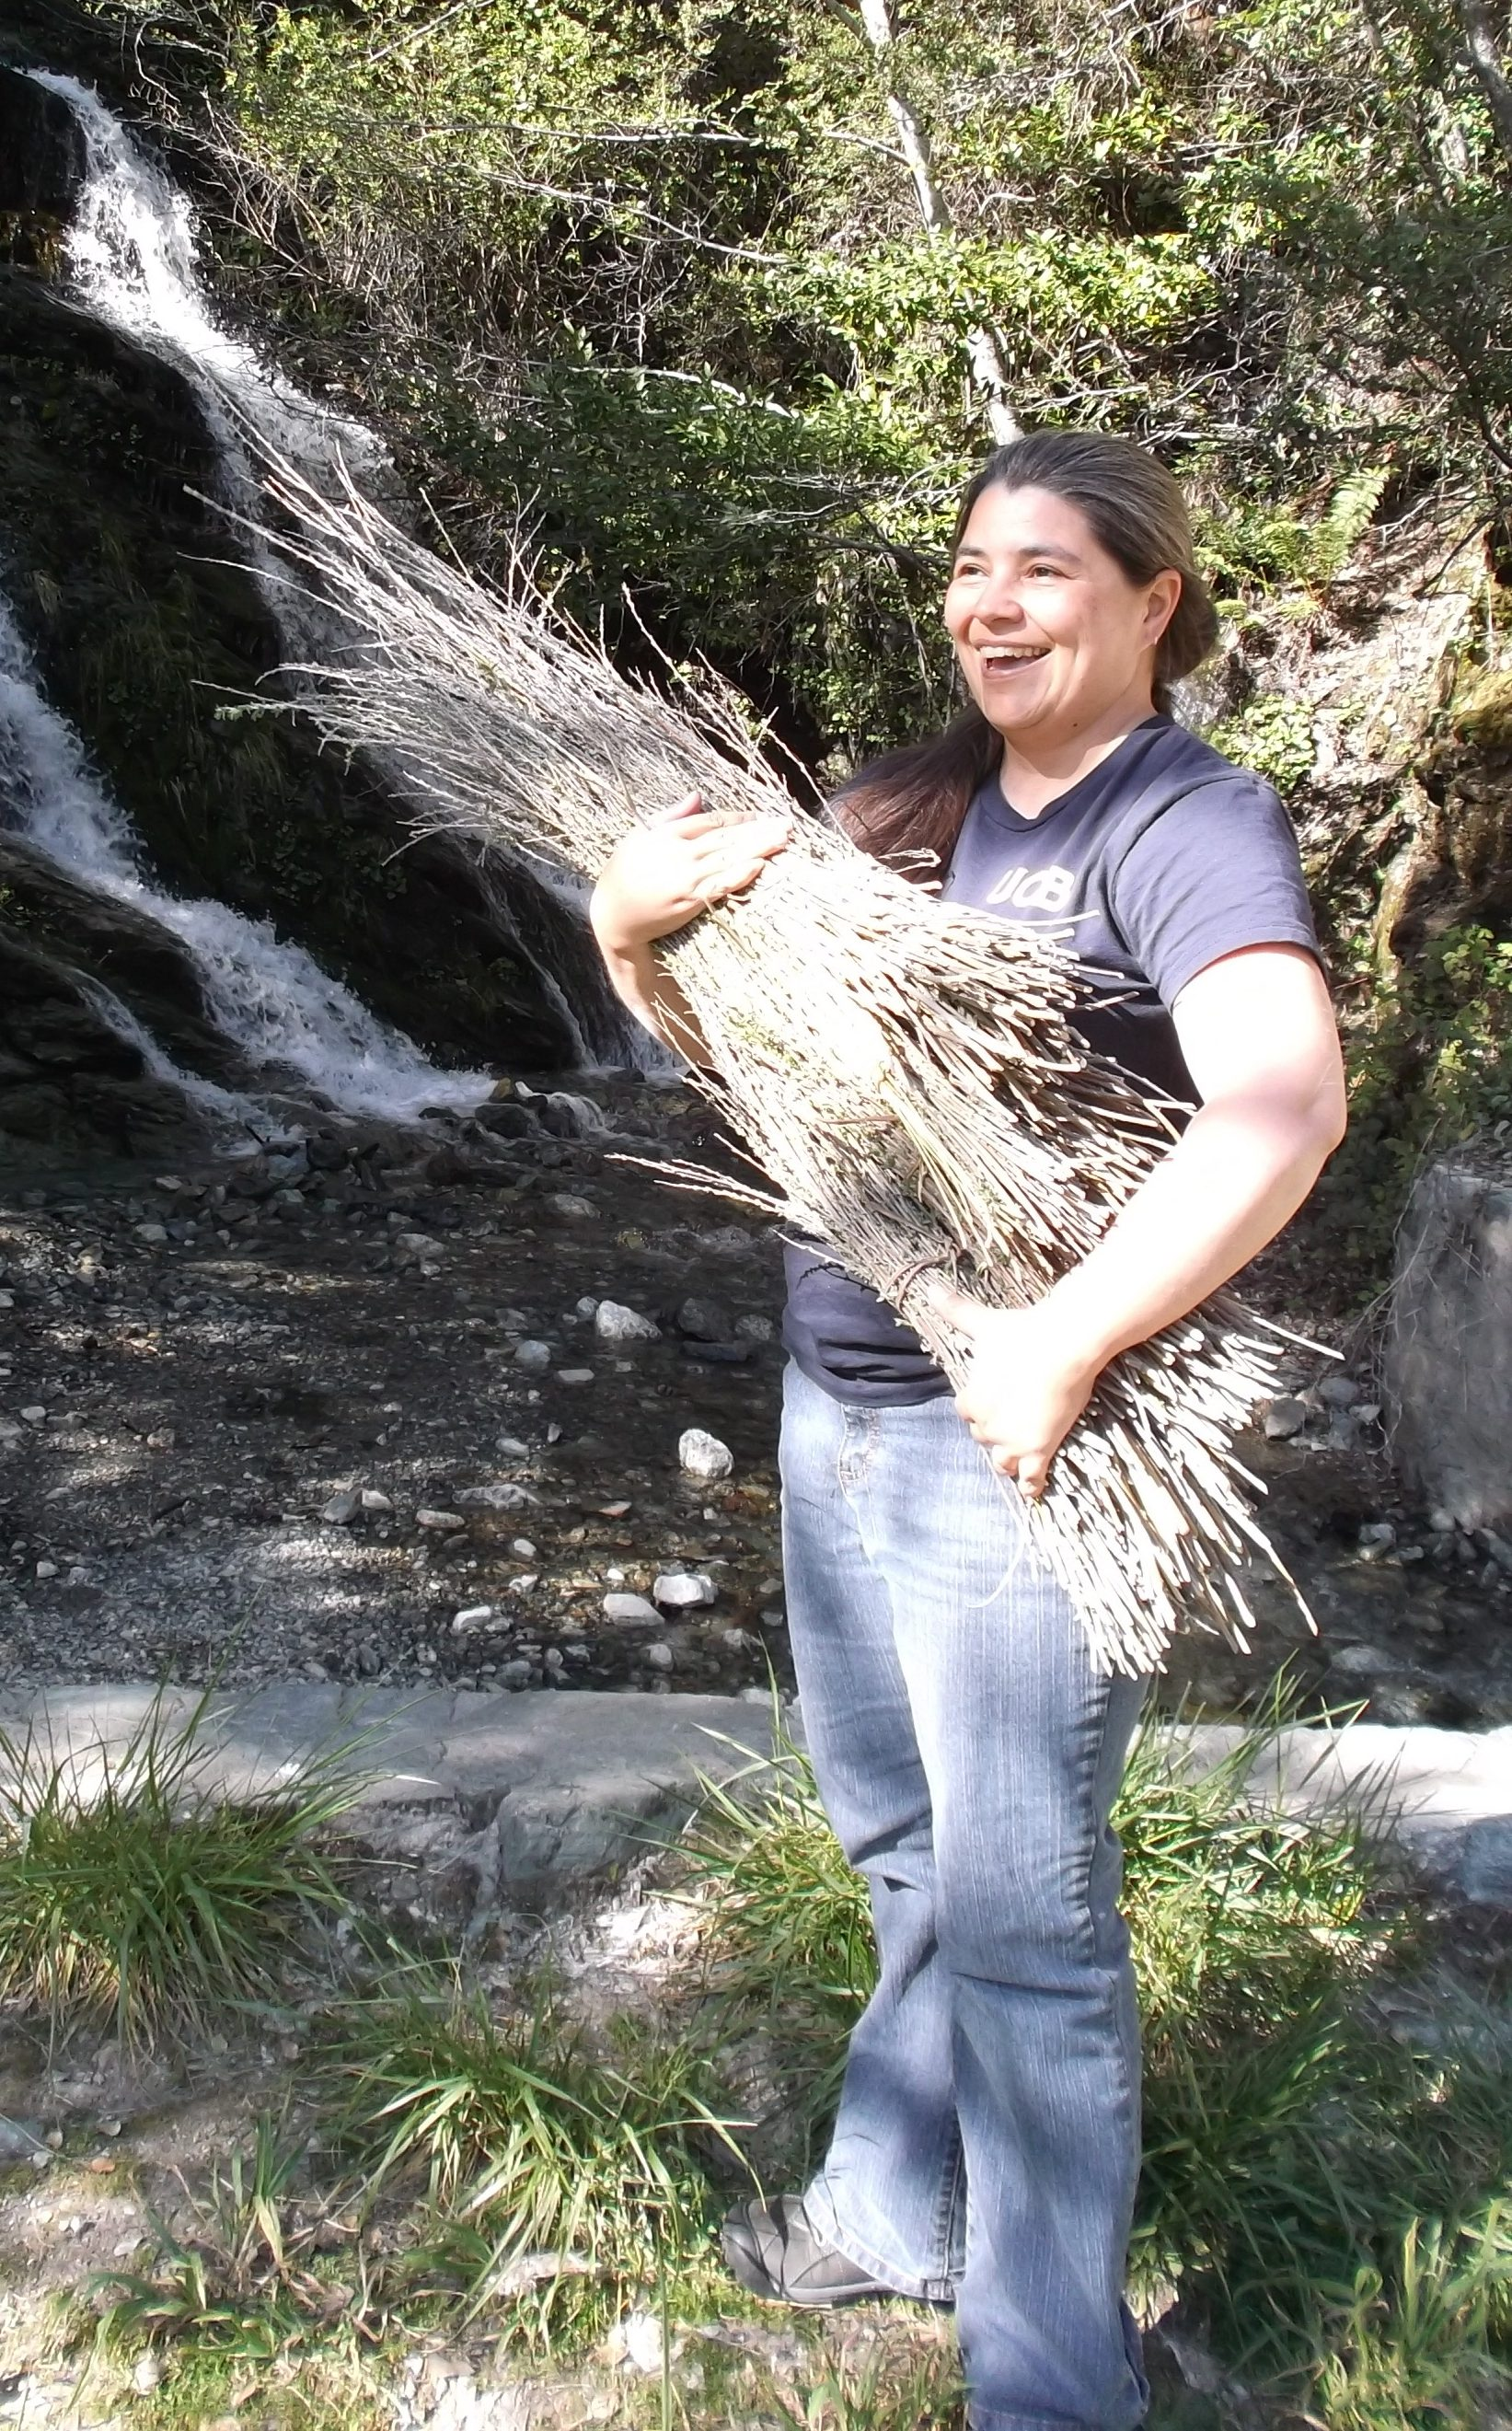 Carolyn Smith stands in front of a tree on a grassy area holding a sheaf of fiber used for basketry